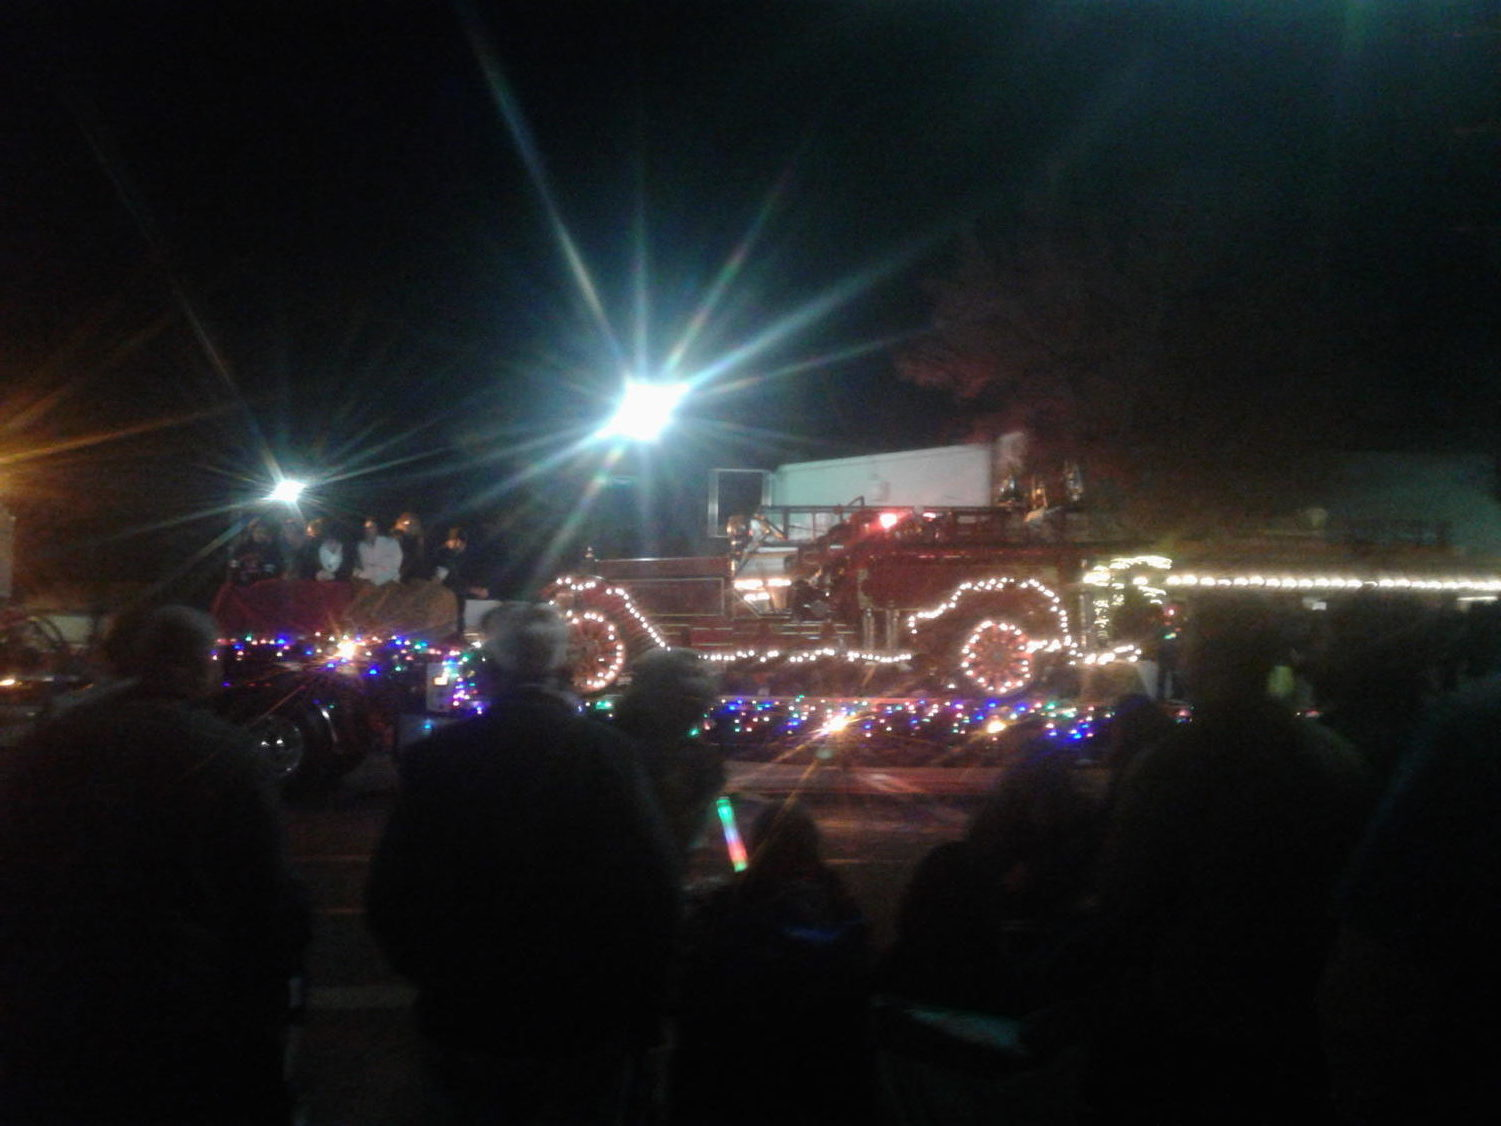 Citizens gather together to celebrate the holiday season with a parade.